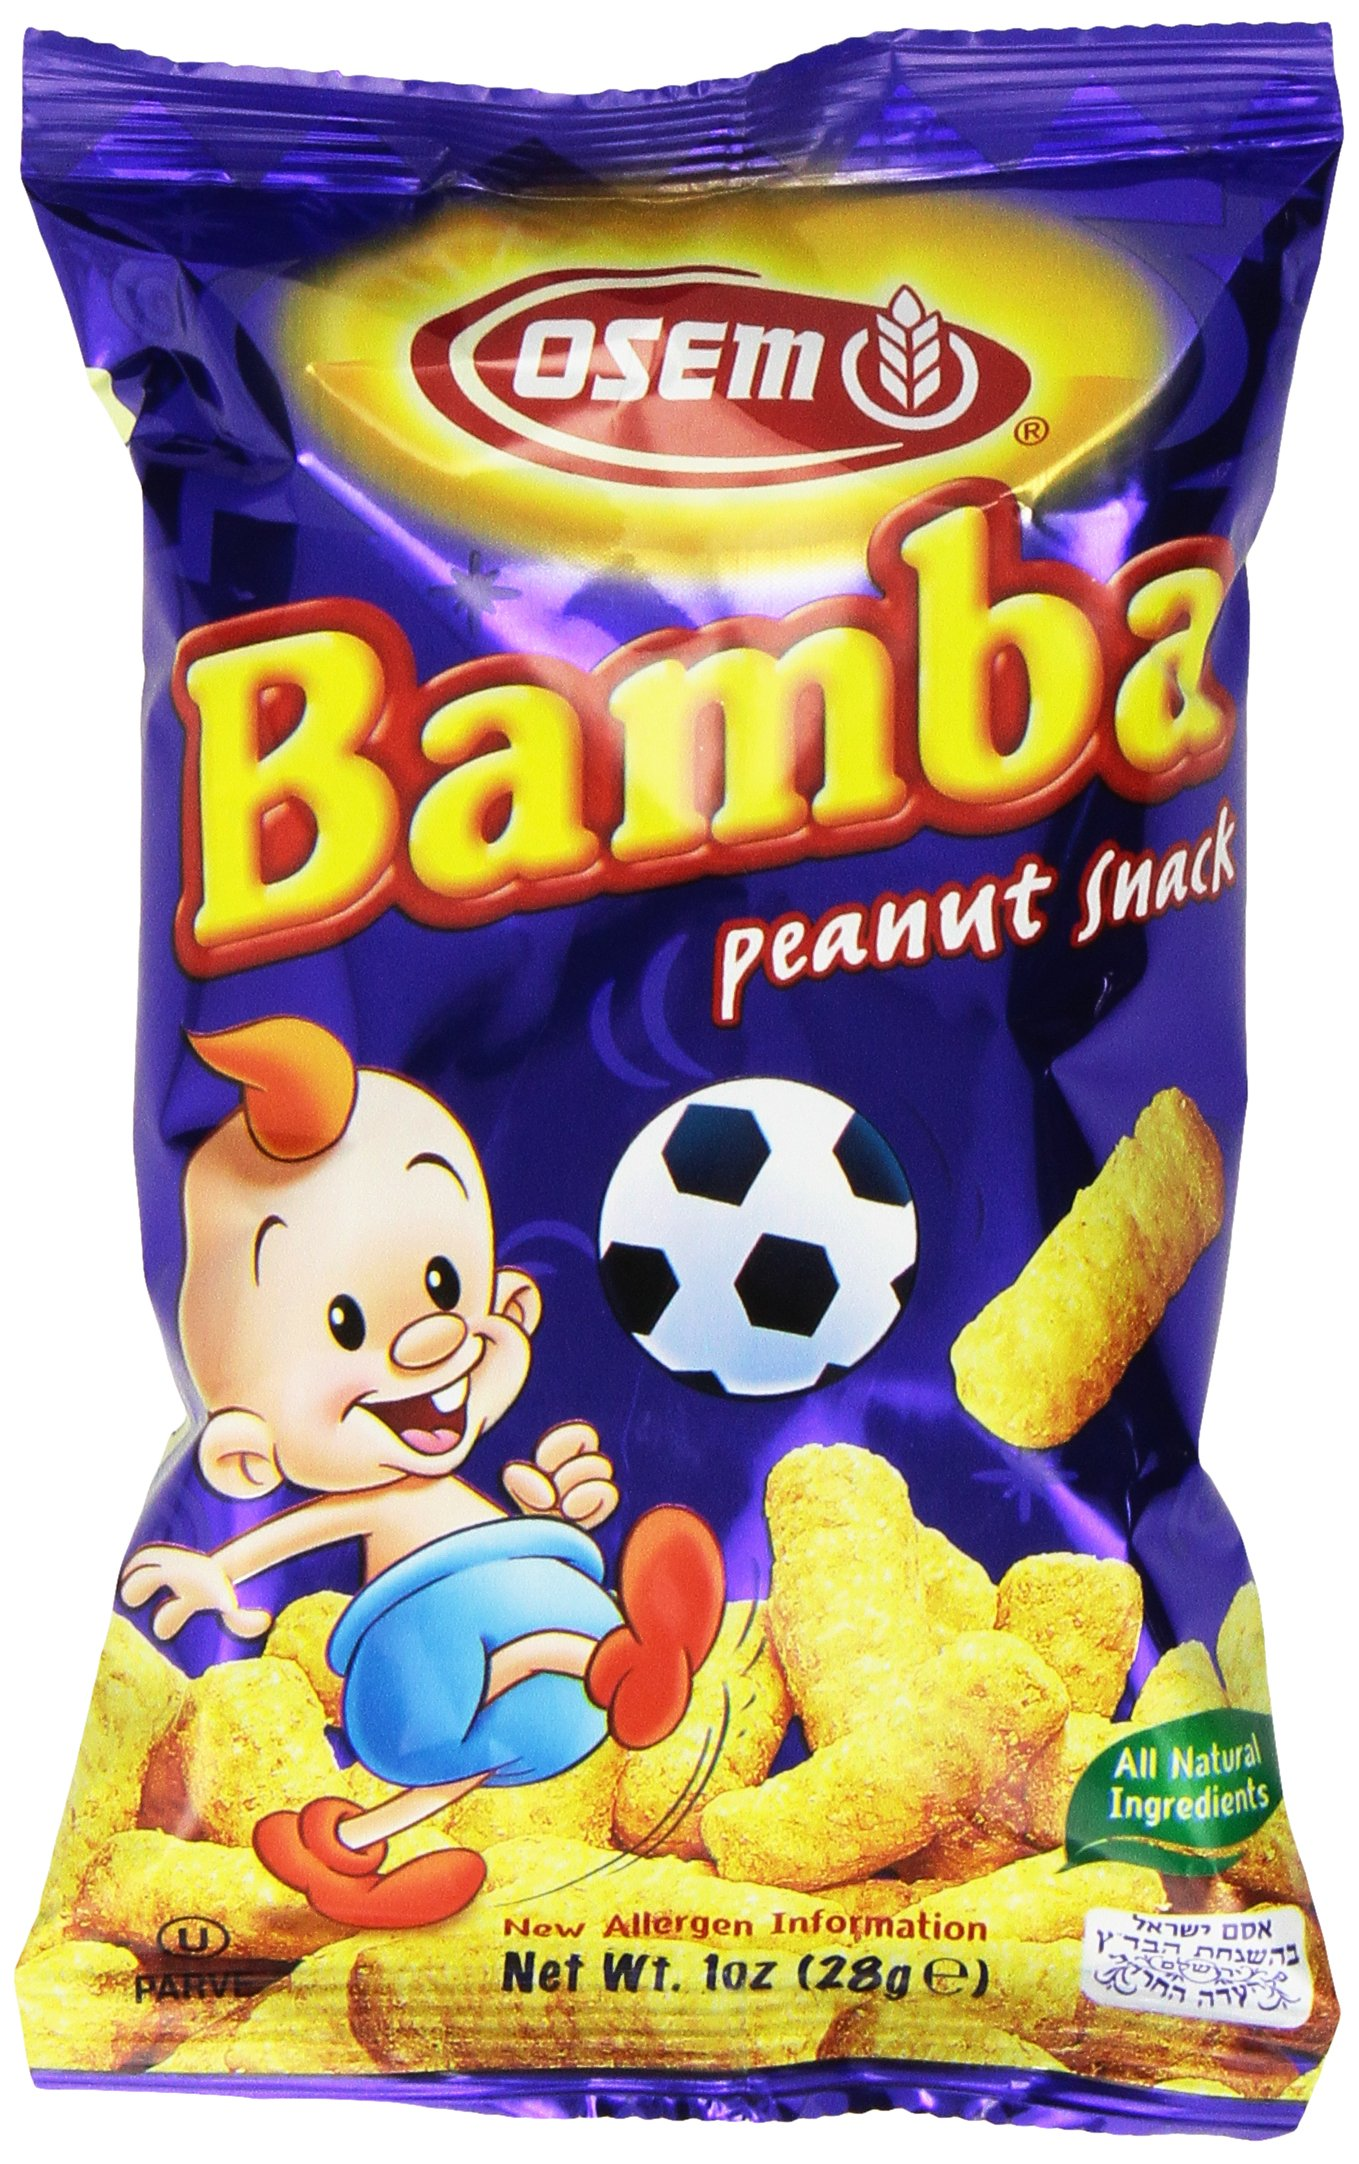 Bamba Peanut Butter Snacks All Natural Peanut Butter Corn Puff Snack (Pack of 24 1oz Bags) by Osem